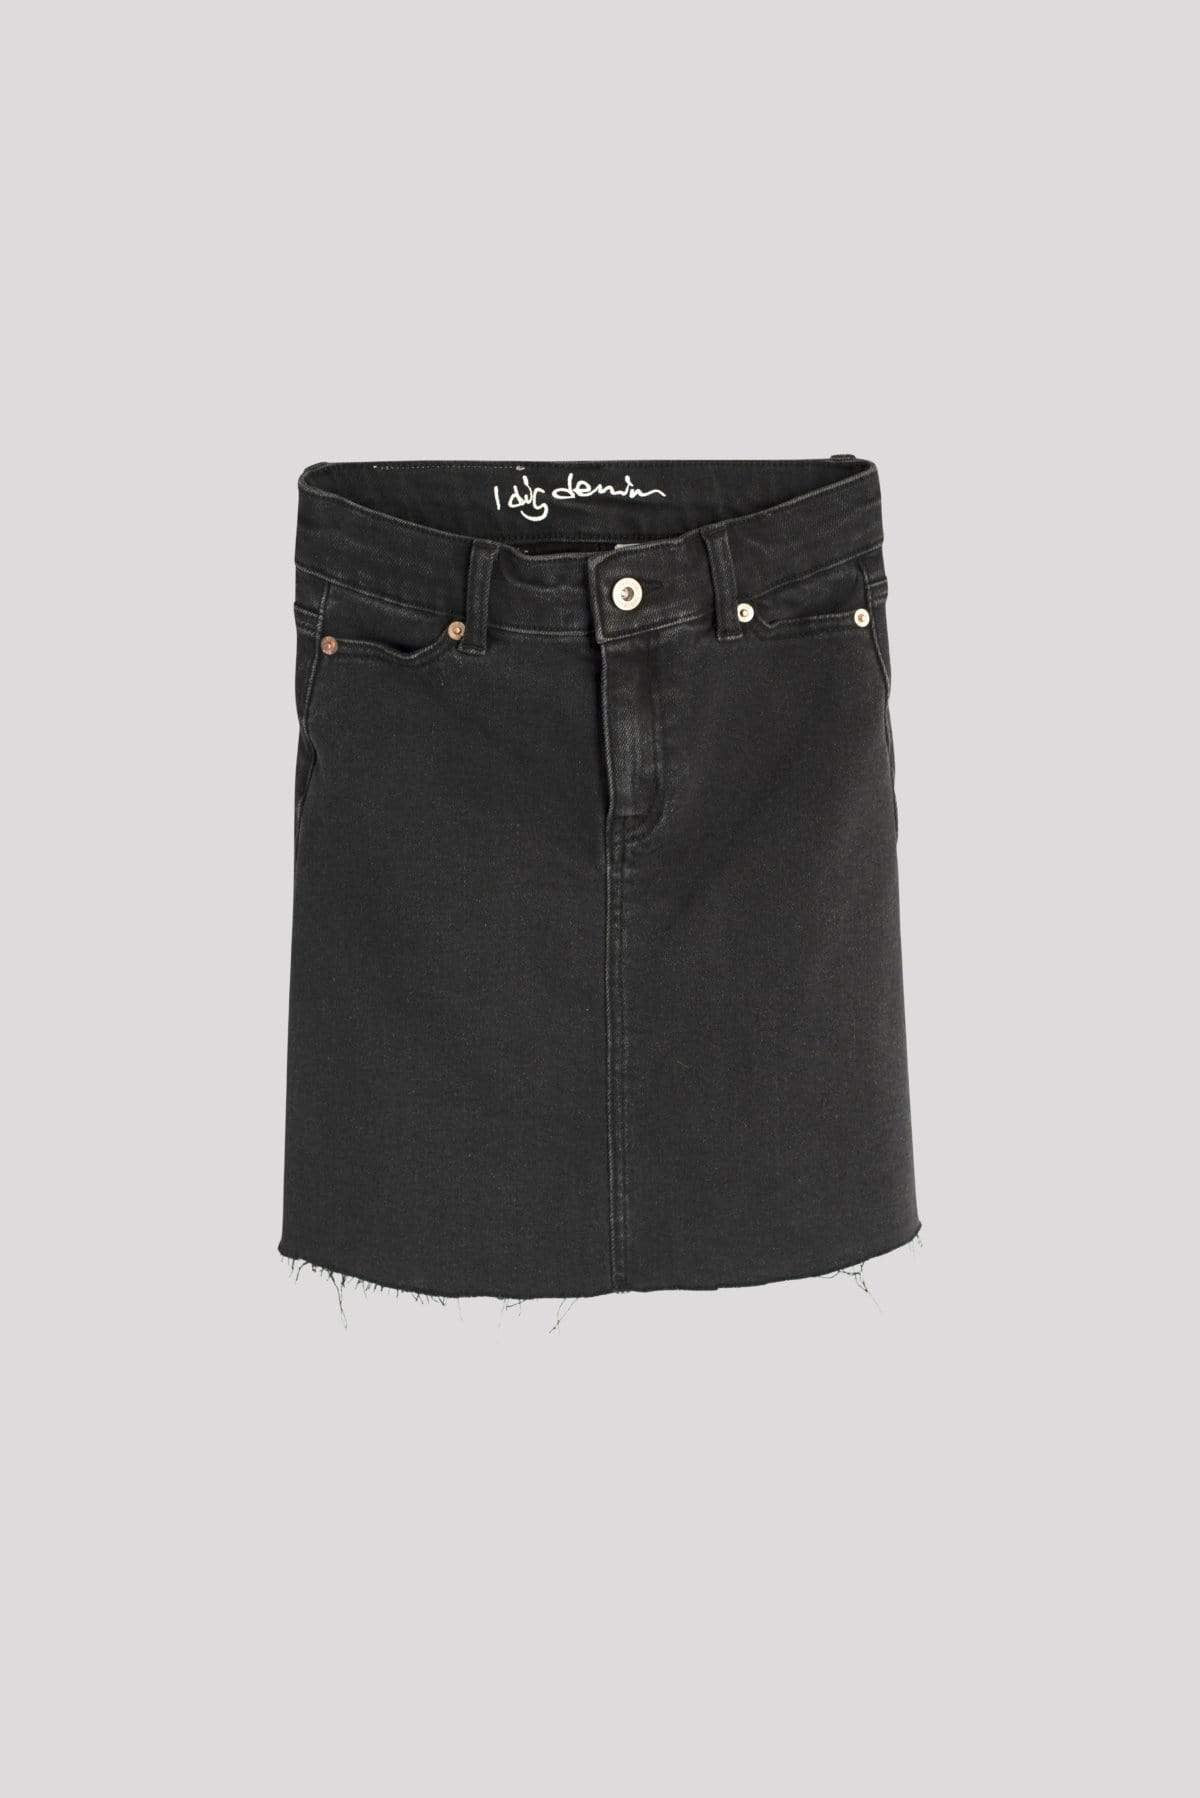 I Dig Denim Bree Denim Skirt - Black